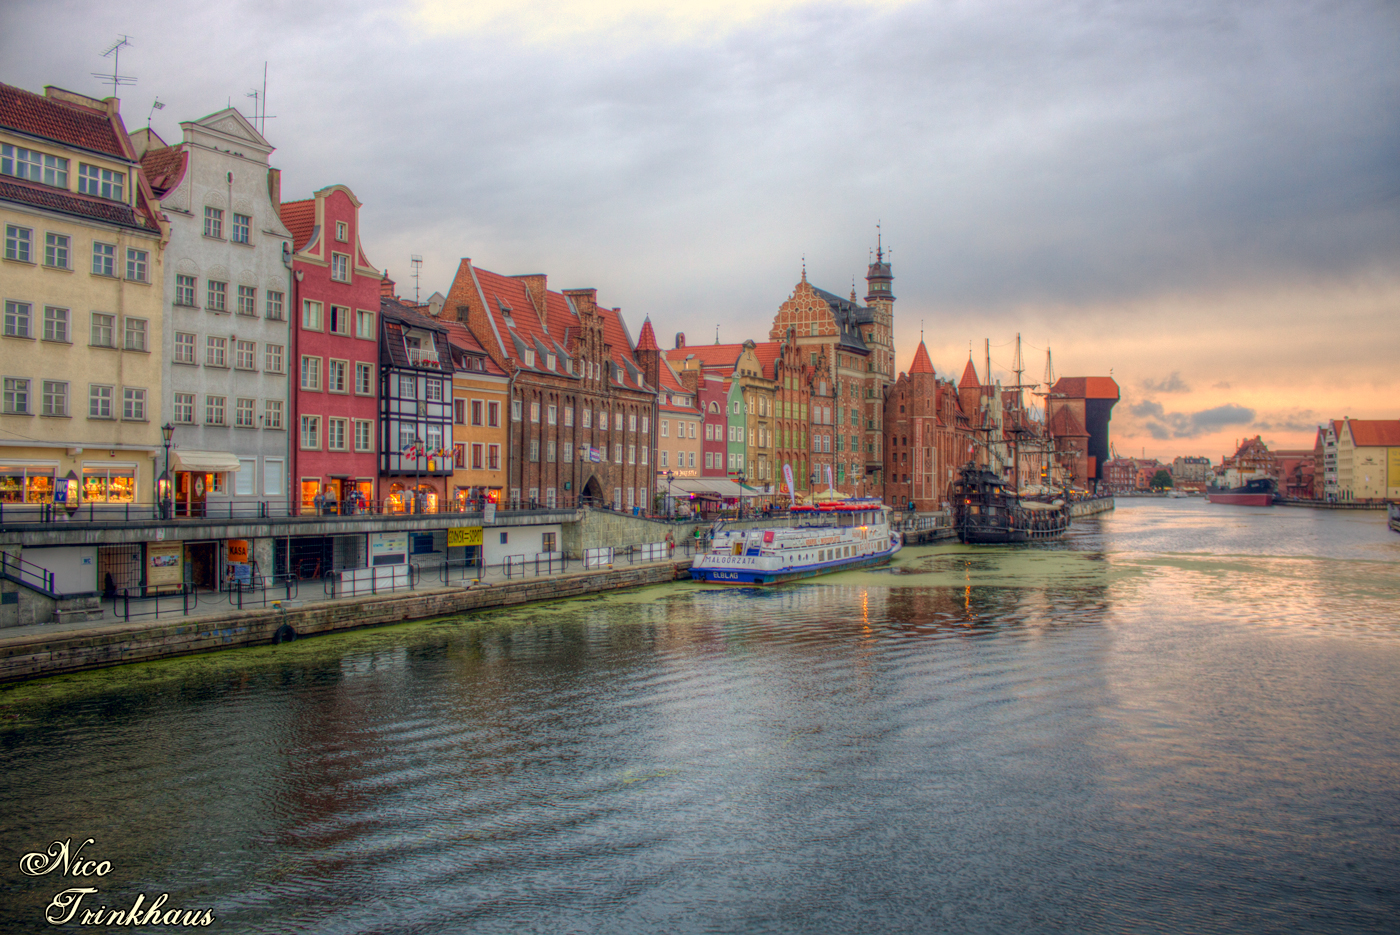 Soft Sunset on the Riverbanks of the Old Town in Gdansk / Danzig, Poland